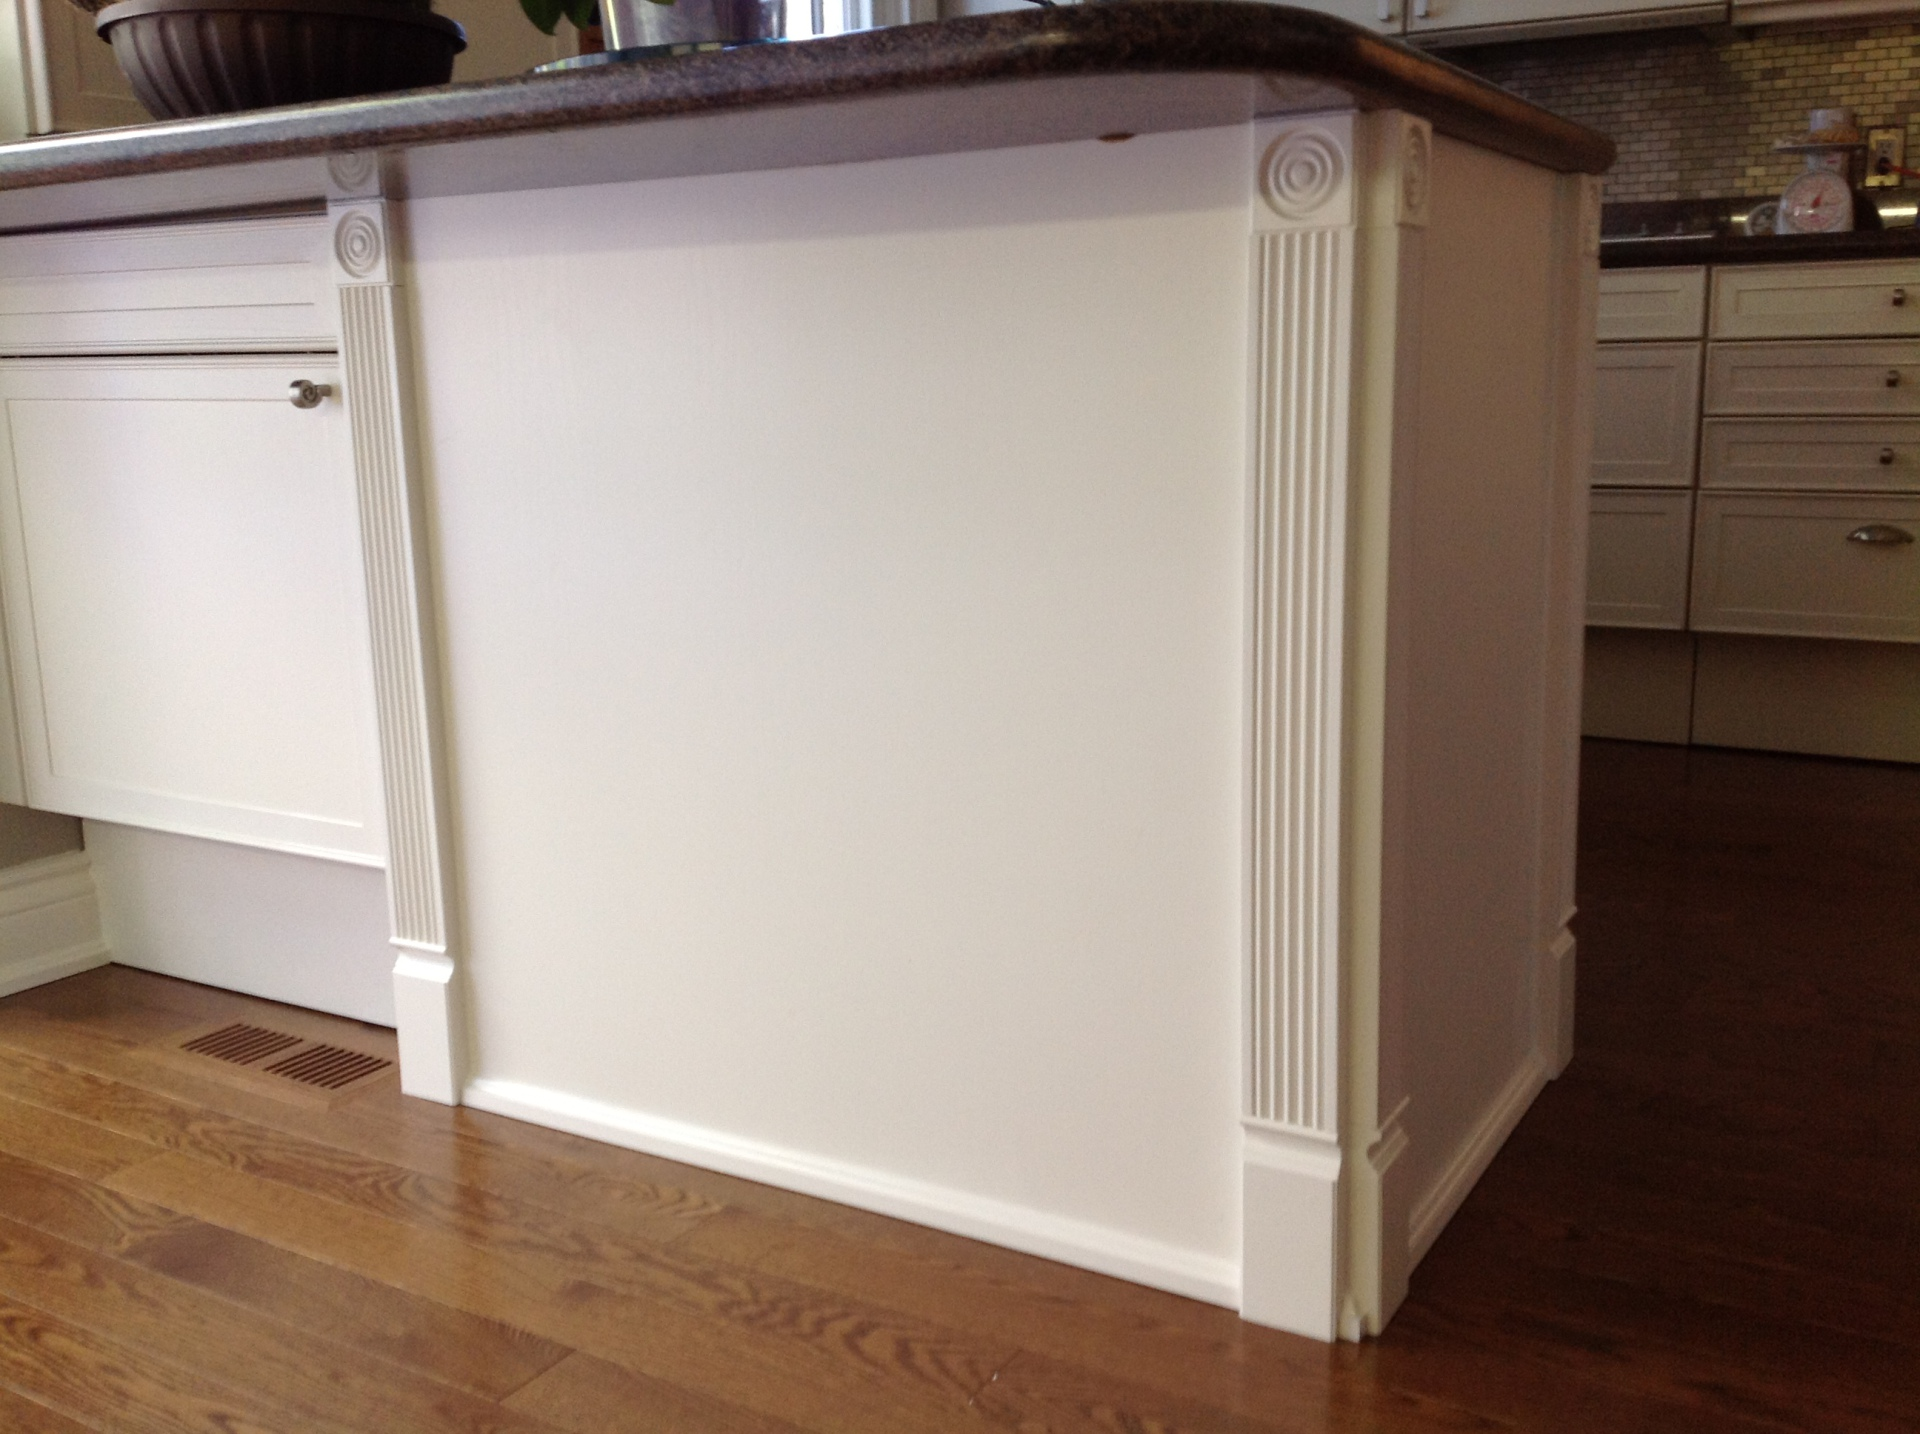 Fluted Trim added to cabinet